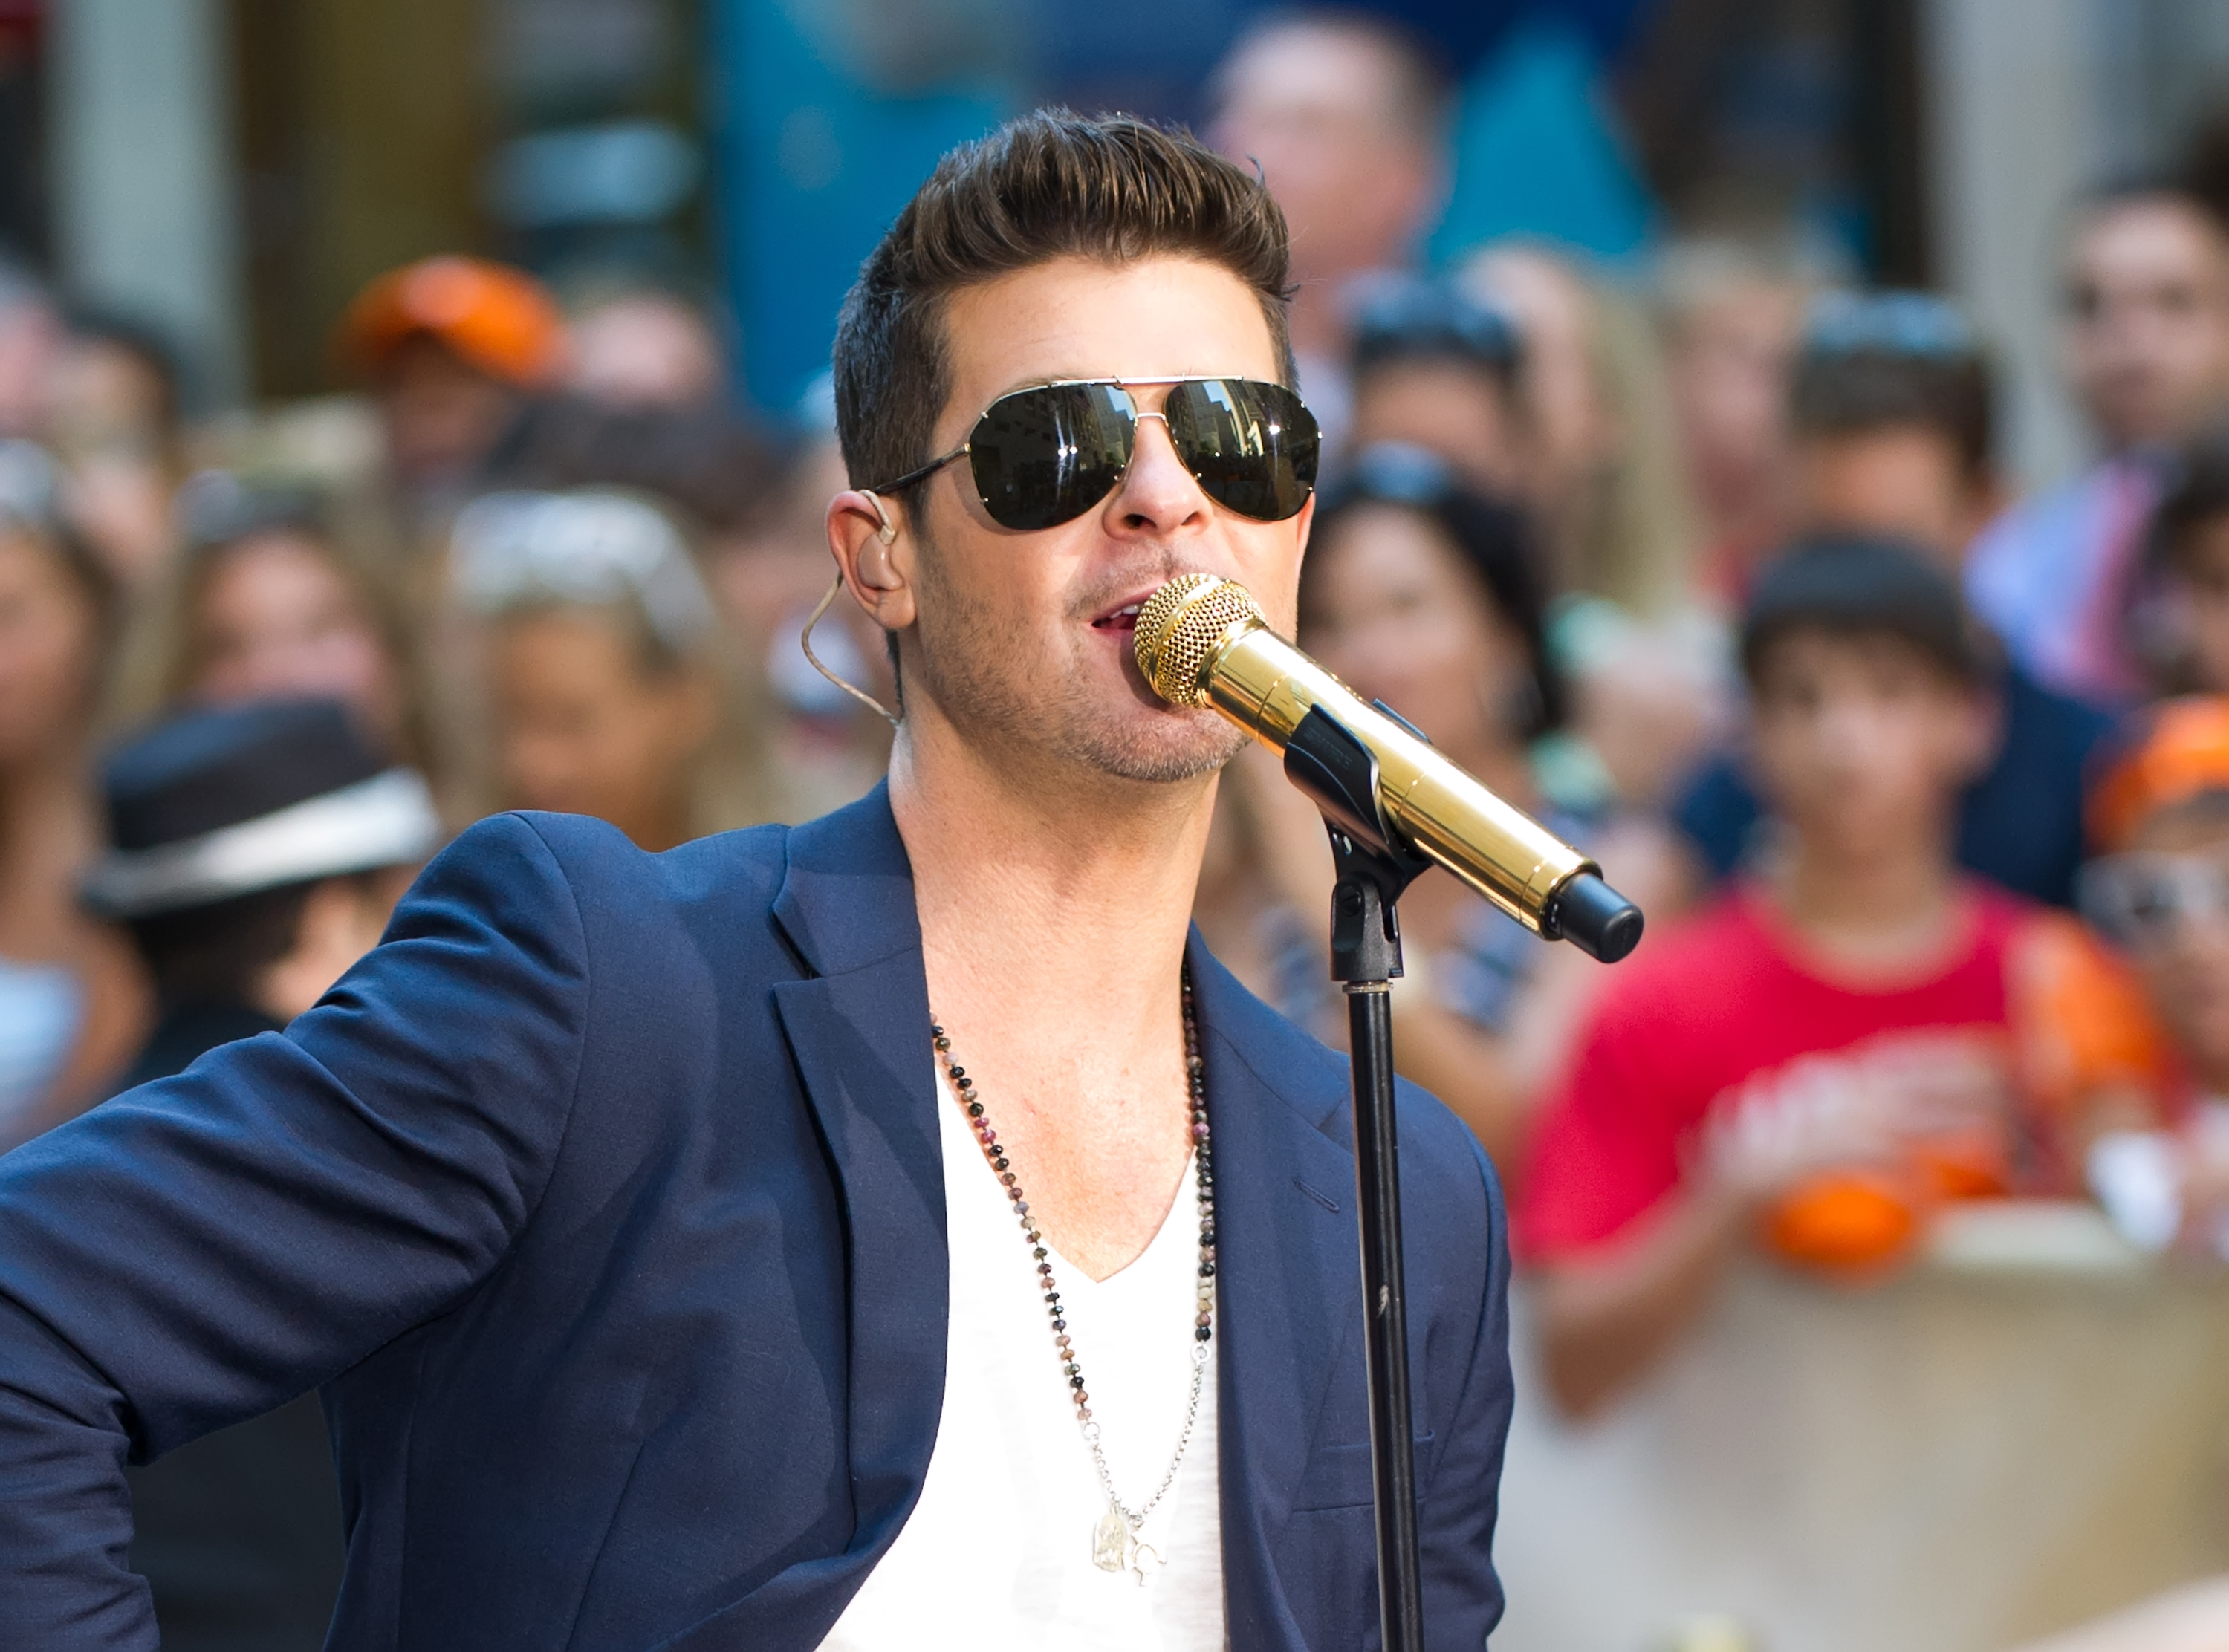 NEW YORK, NY - JULY 30:  Singer Robin Thicke performs on NBC's 'Today' at Rockefeller Plaza on July 30, 2013 in New York City